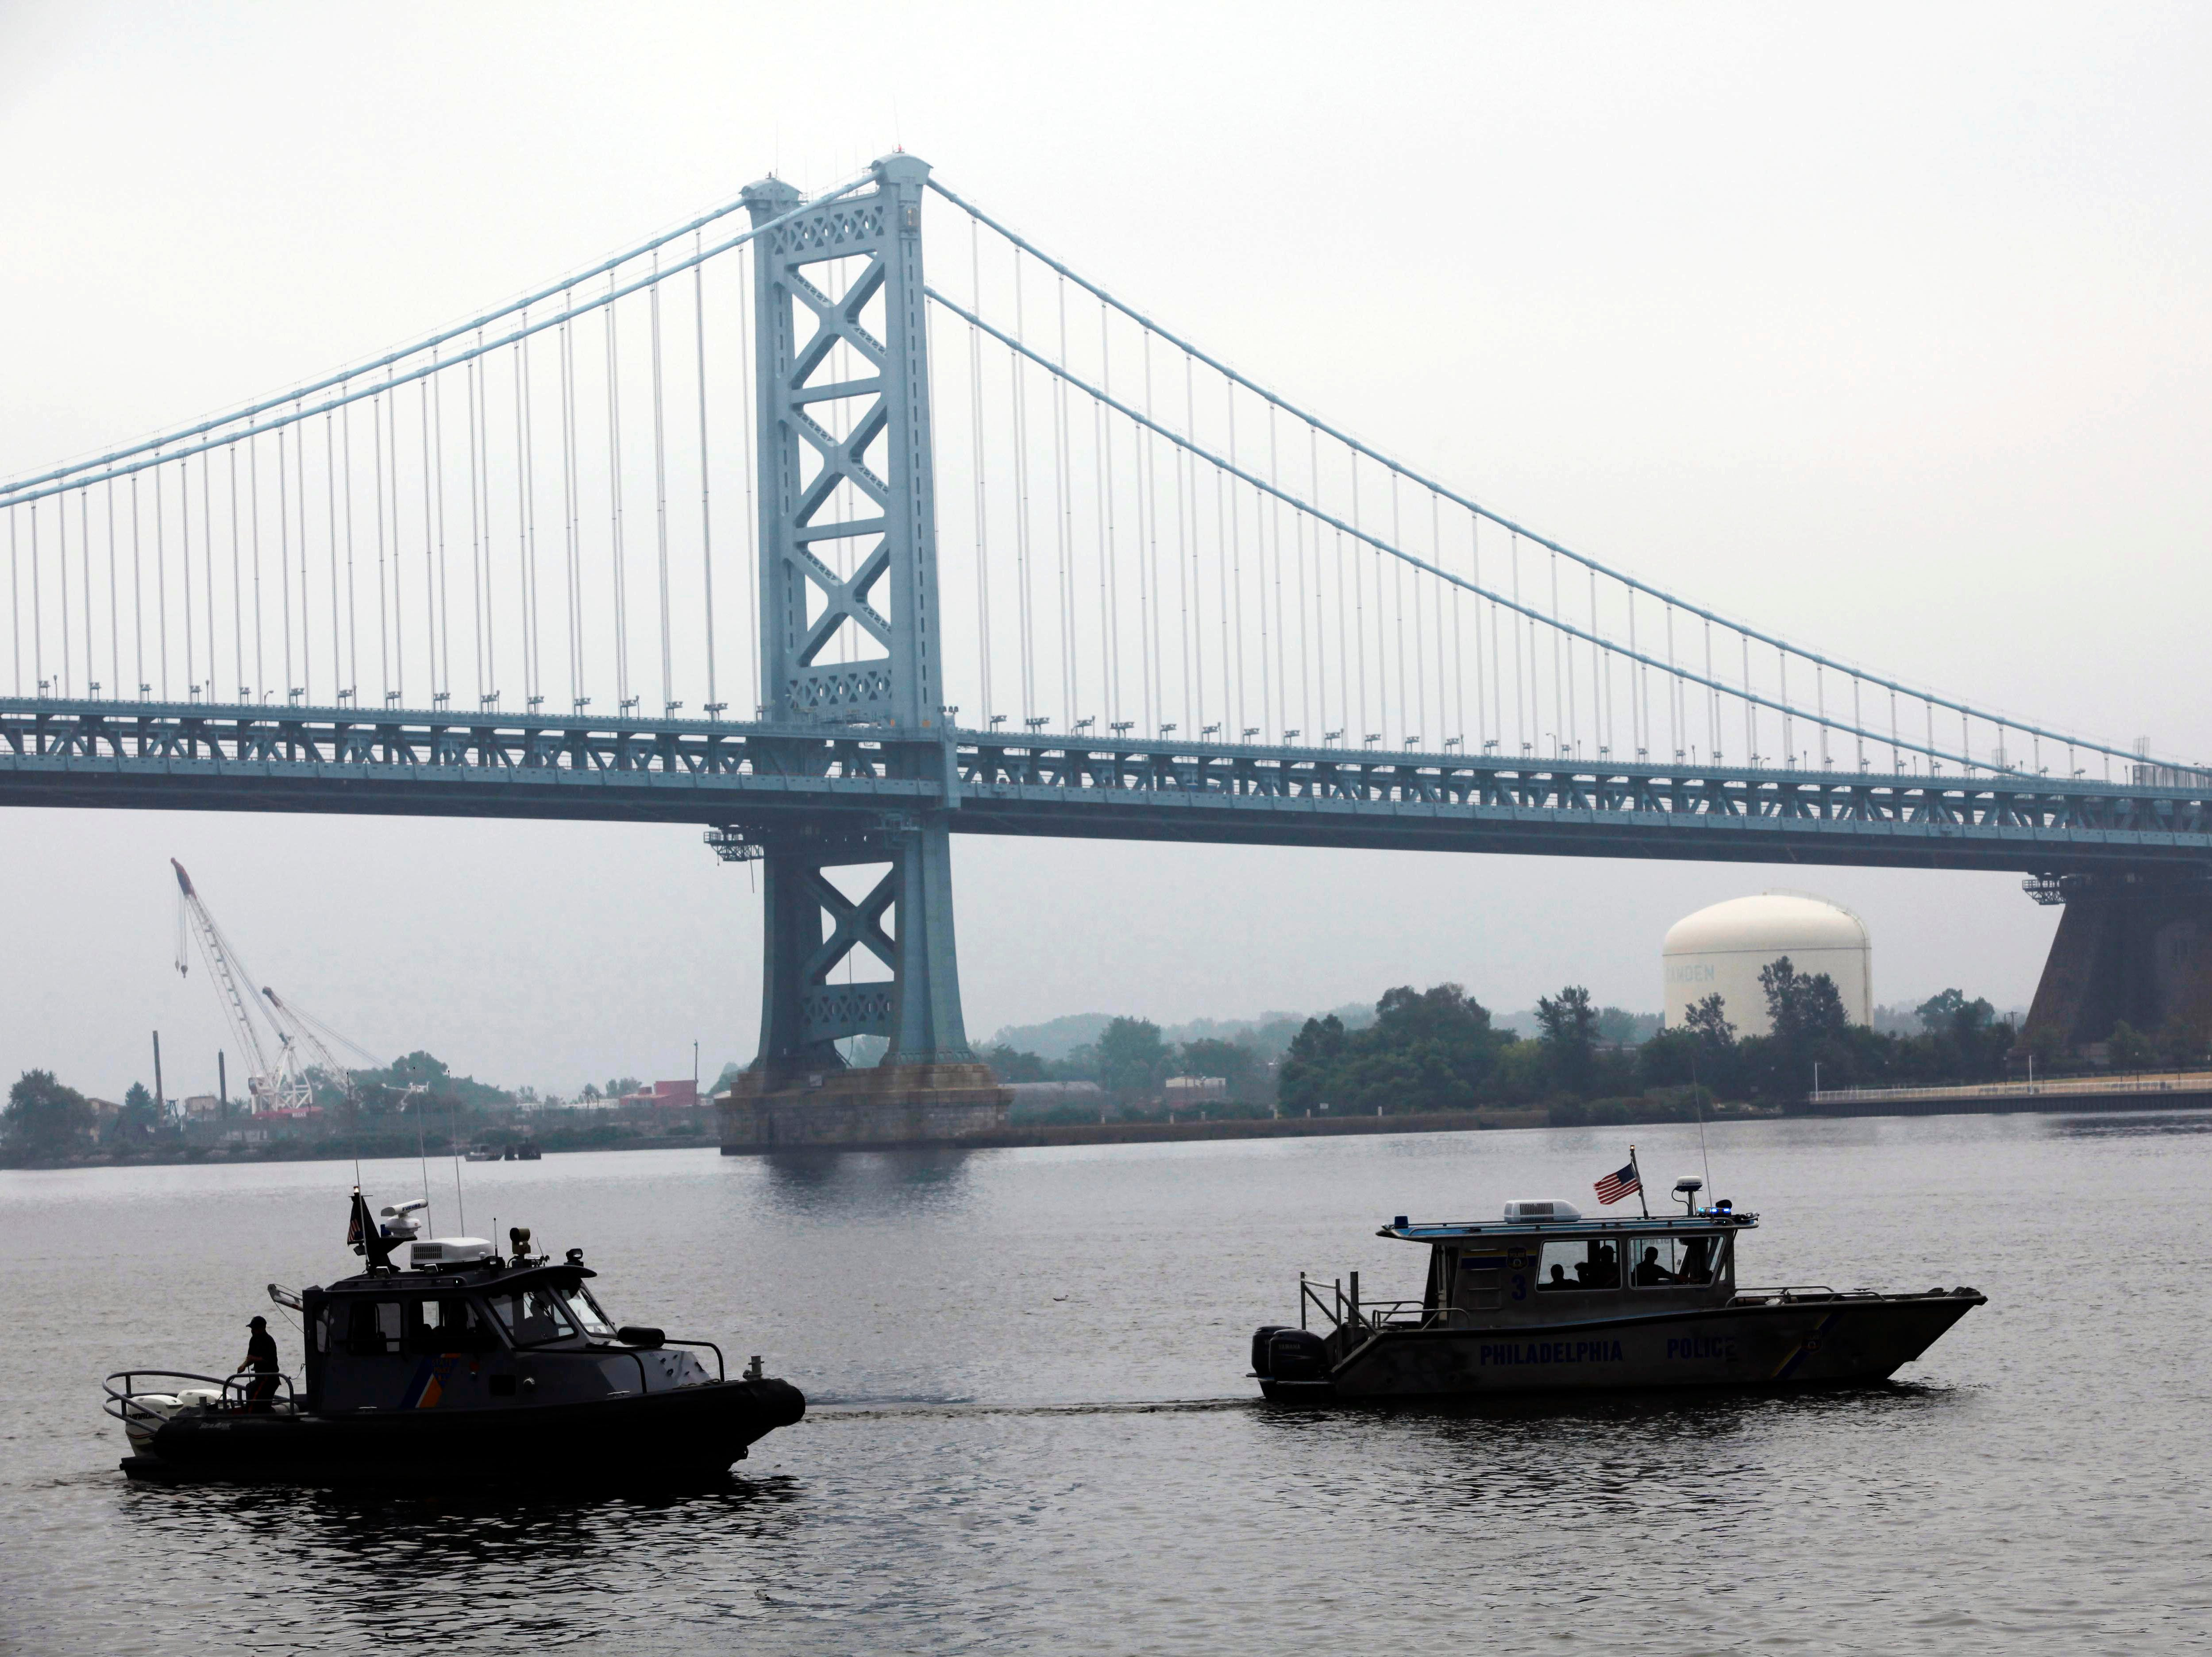 ORG XMIT: PAMR102 Search vessels look for two missing tour boat passengers on the Delaware River in view of the Benjamin Franklin Bridge in Philadelphia, Thursday, July 8, 2010. The passengers' amphibious craft in which they were riding was struck and sunk by a barge Wednesday. (AP Photo/Matt Rourke)